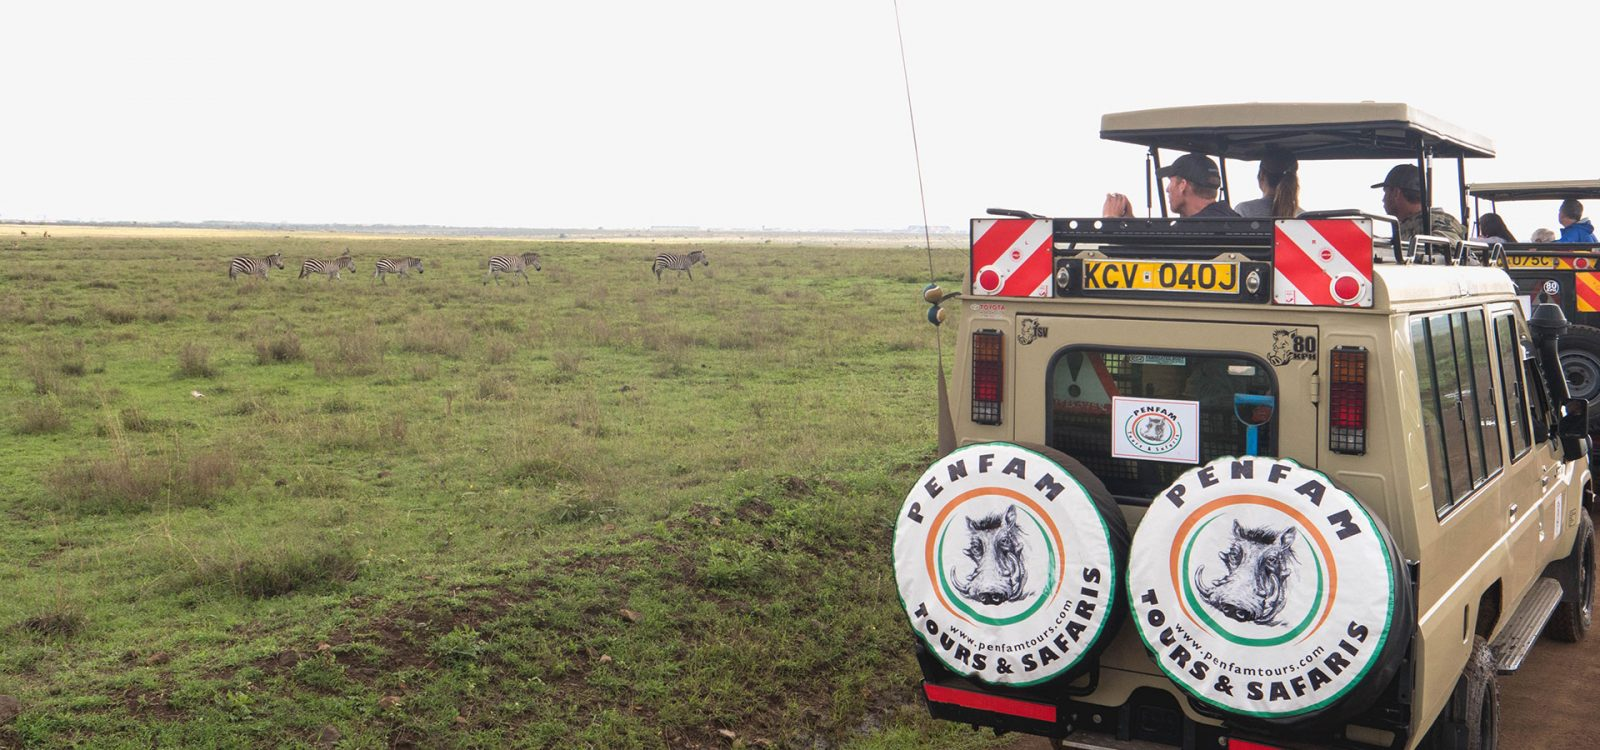 Penfam Tours and Safaris 4x4 van Nairobi National Park